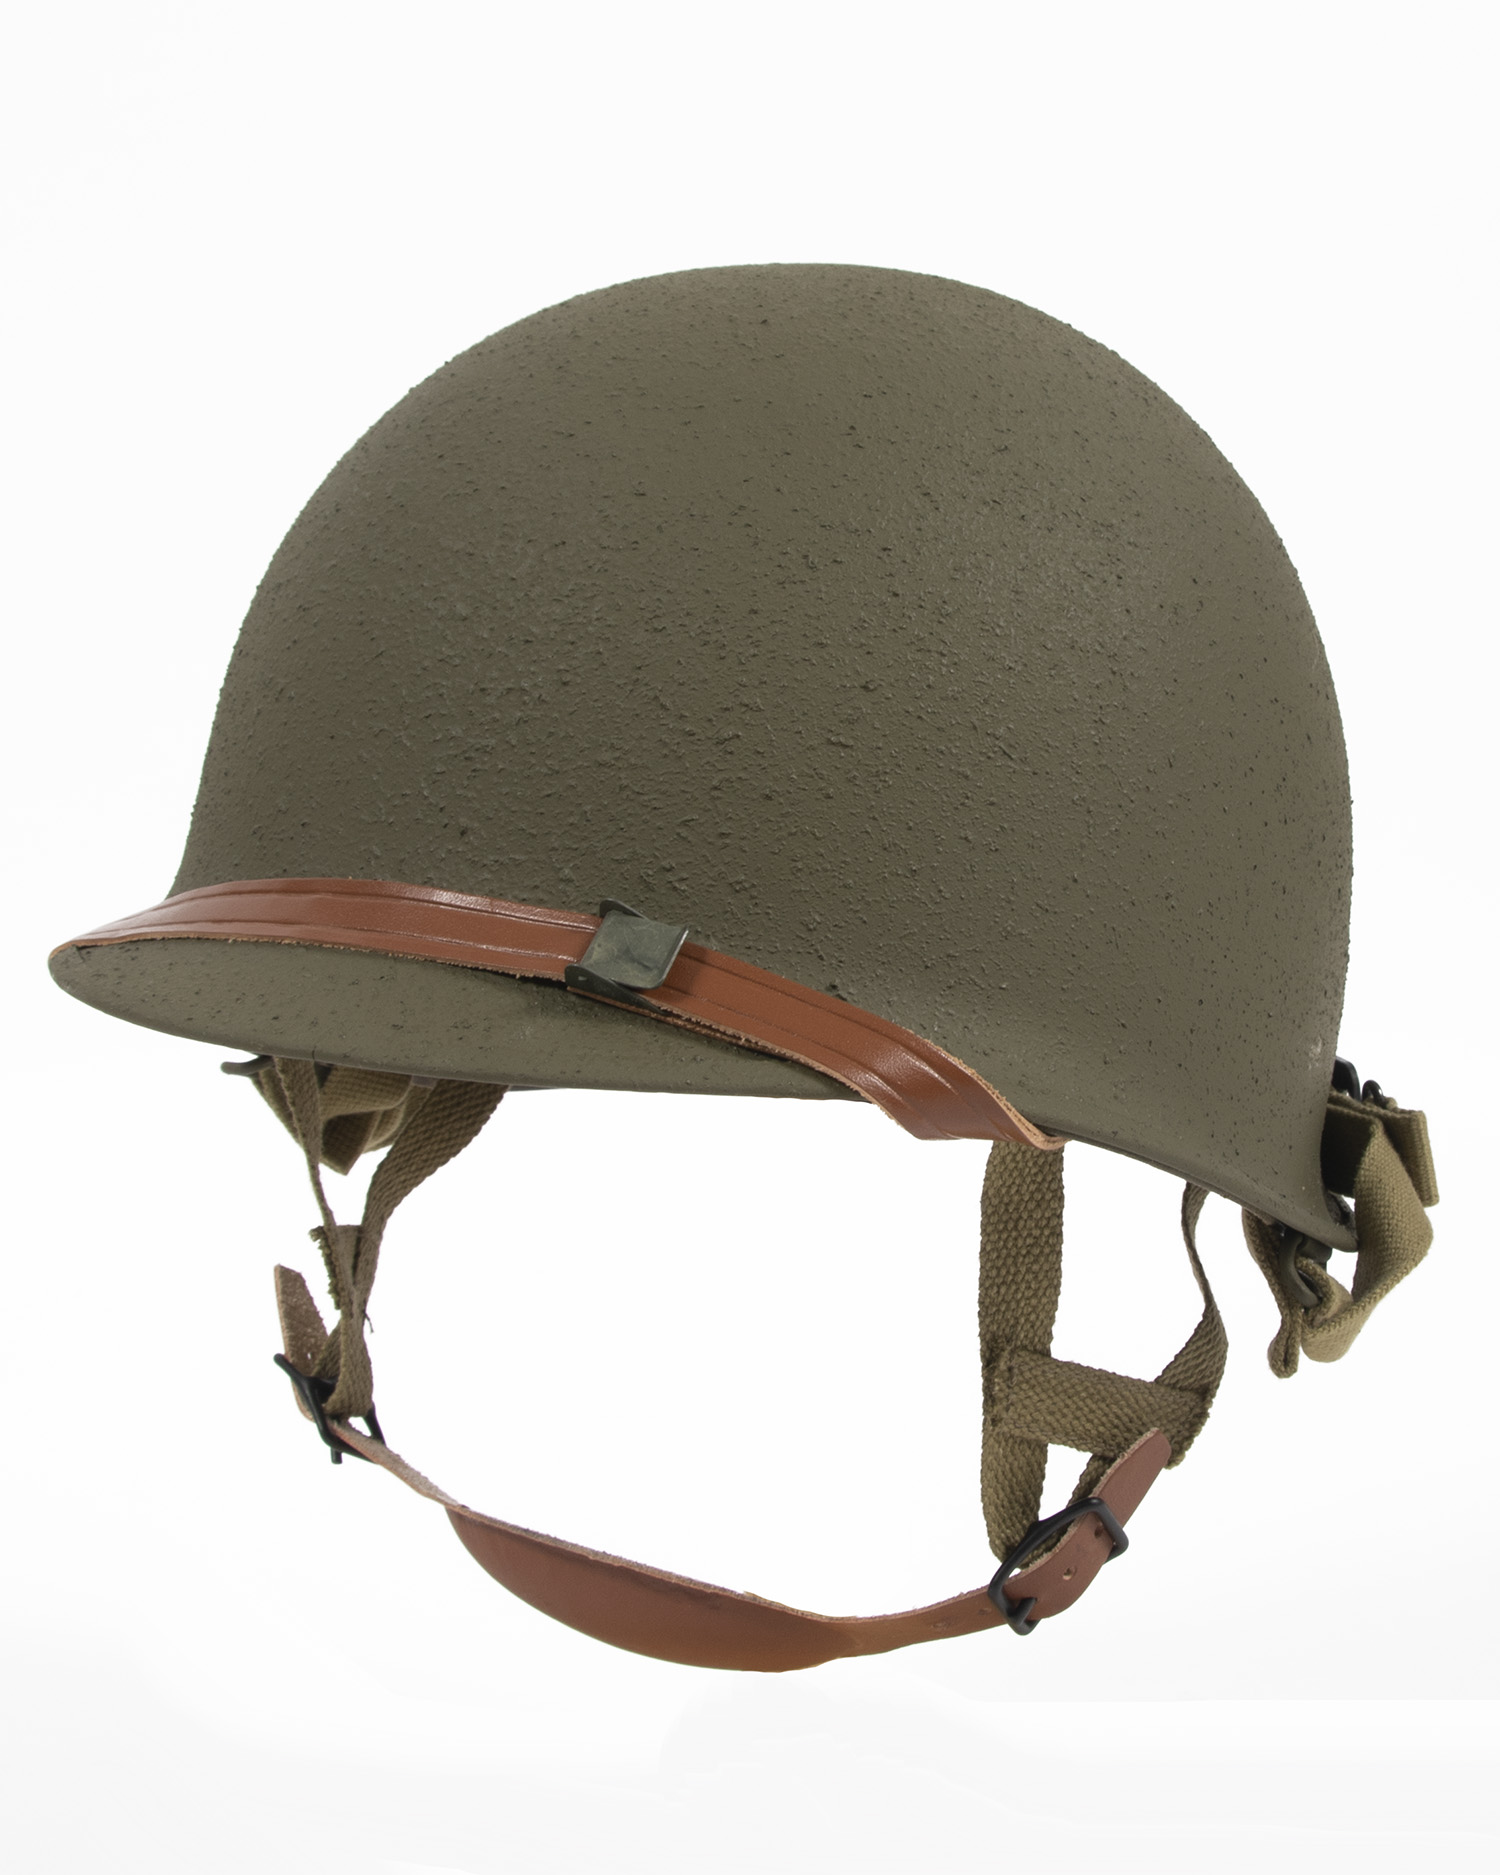 US WWII M1C Paratrooper Helmet, made in USA | ATF